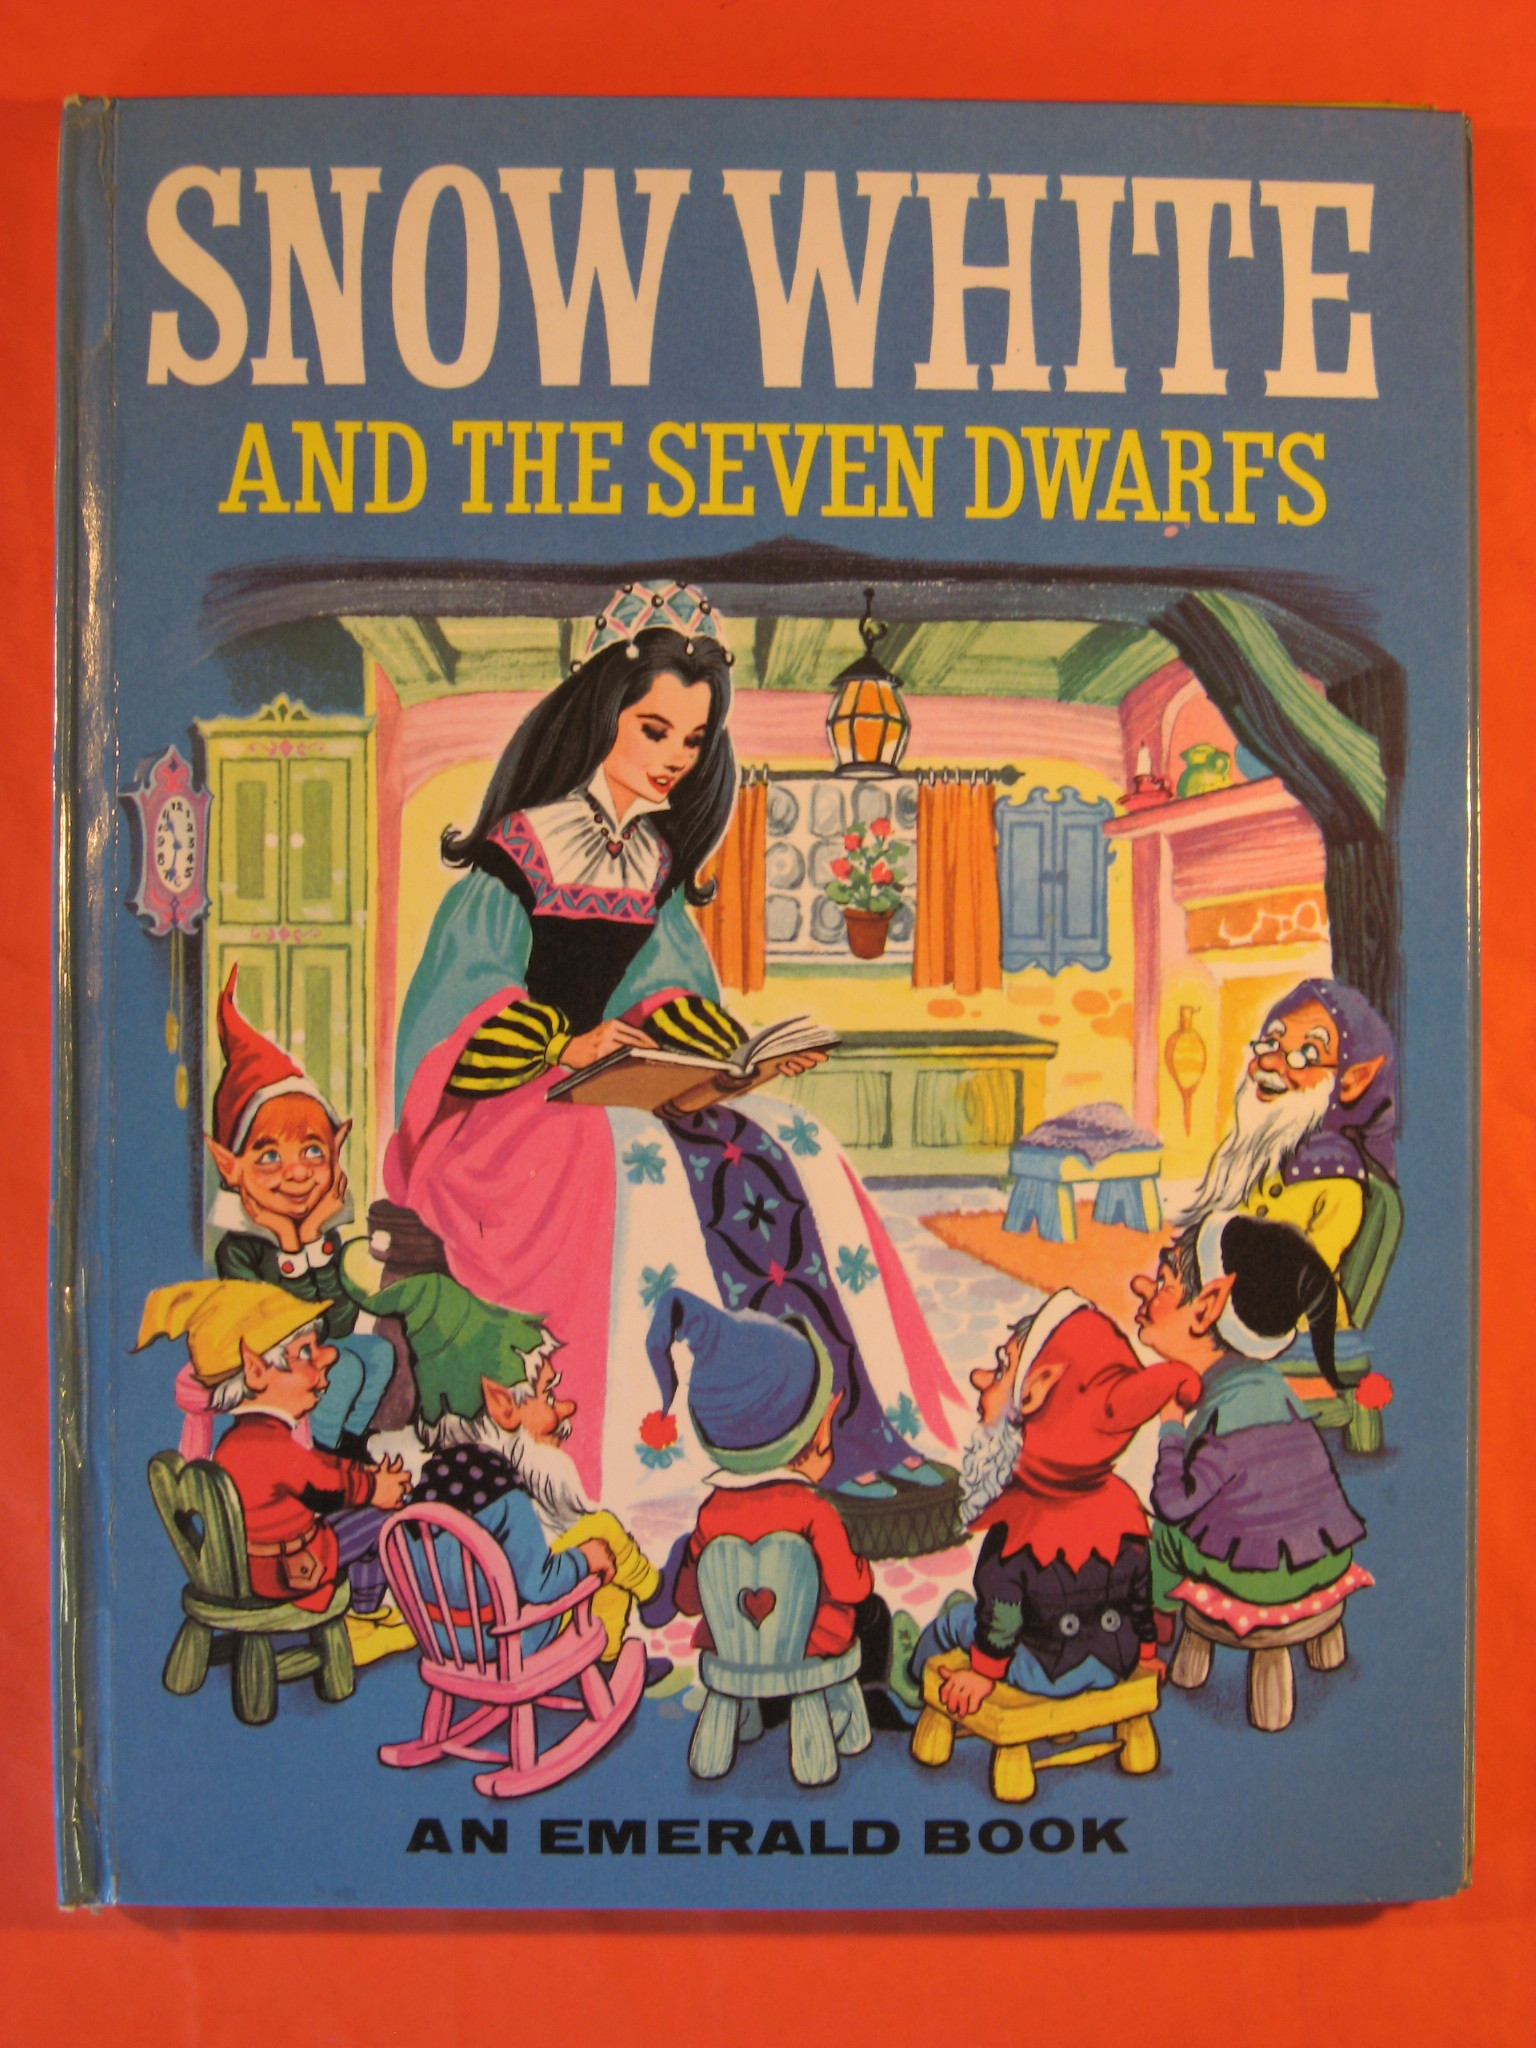 Two 1965 Fairy Tale Books: Snow White And The Seven Dwarfs